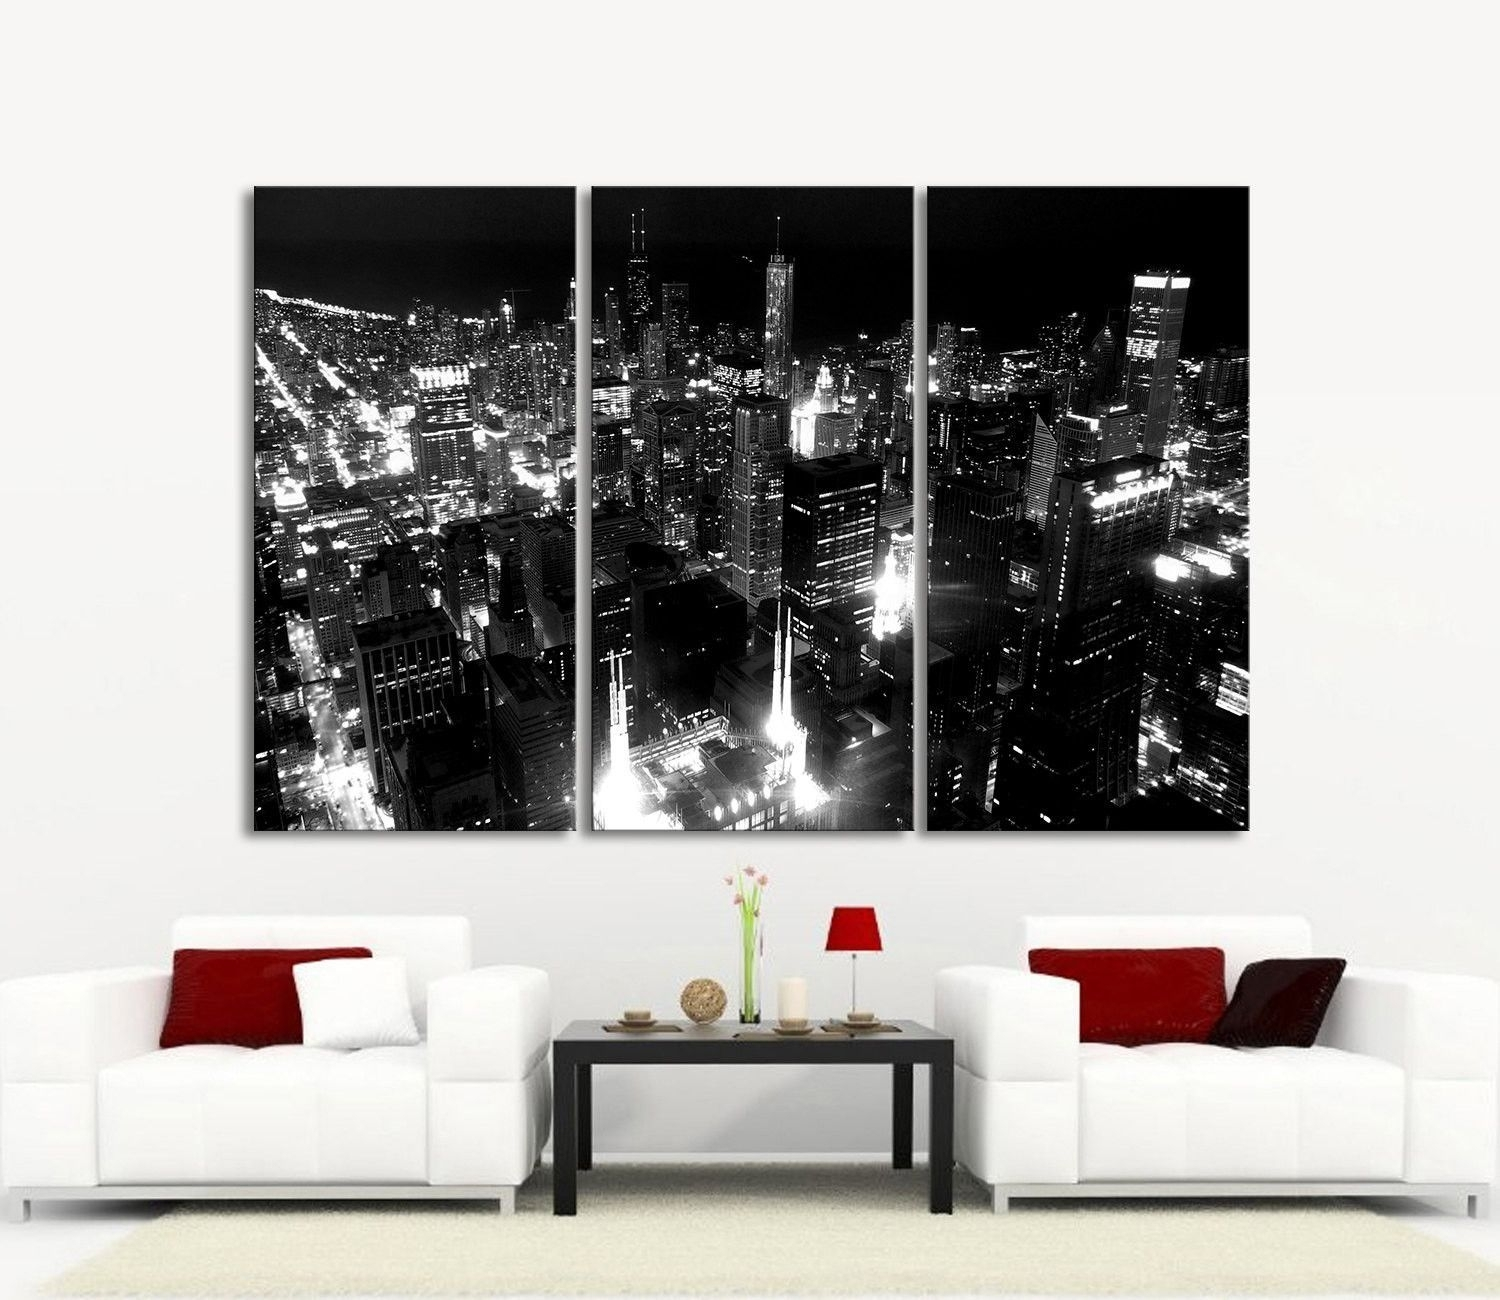 Large Wall Art Canvas Print Chicago City Skyline At Night – 3 Pertaining To Most Recent Framed Canvas Art Prints (View 3 of 15)